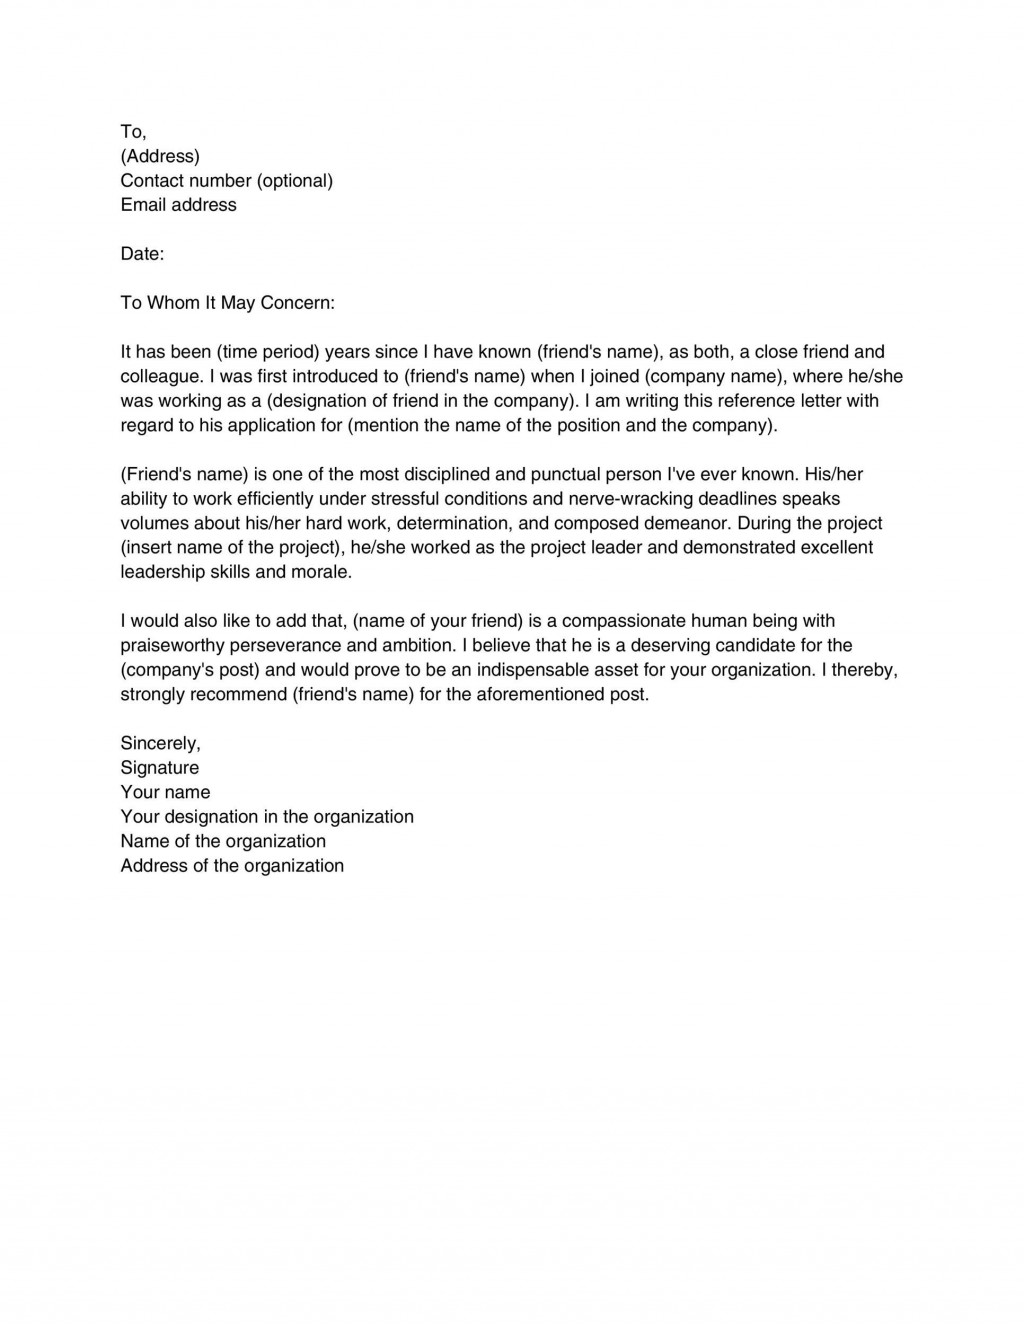 004 Unusual Free Reference Letter Template From Employer Image  For Employment WordLarge